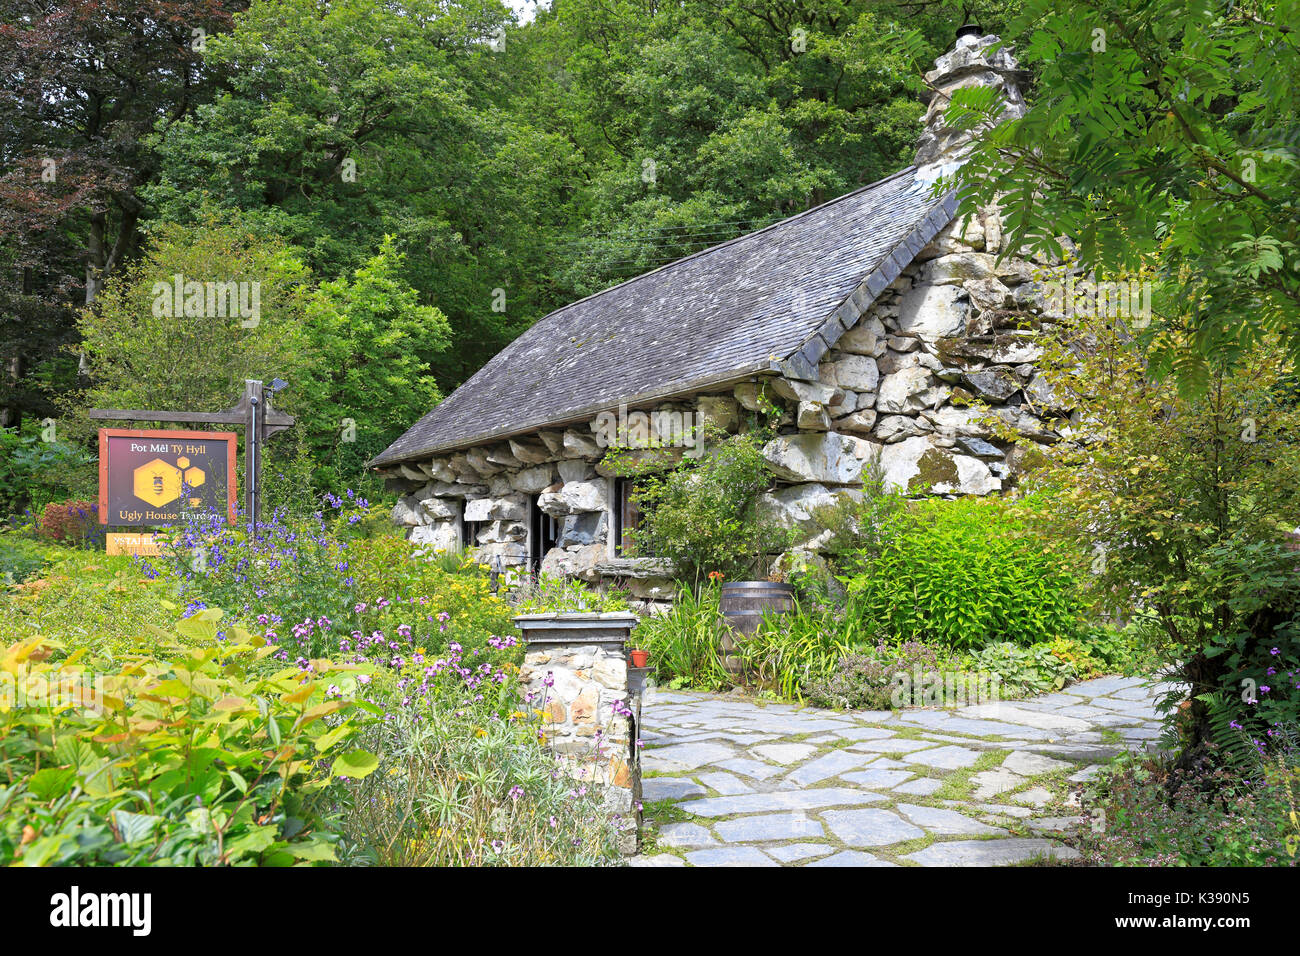 Ty Hyll, the Ugly House, Betws-y-Coed, Snowdonia National Park, Conwy, North Wales, UK. - Stock Image